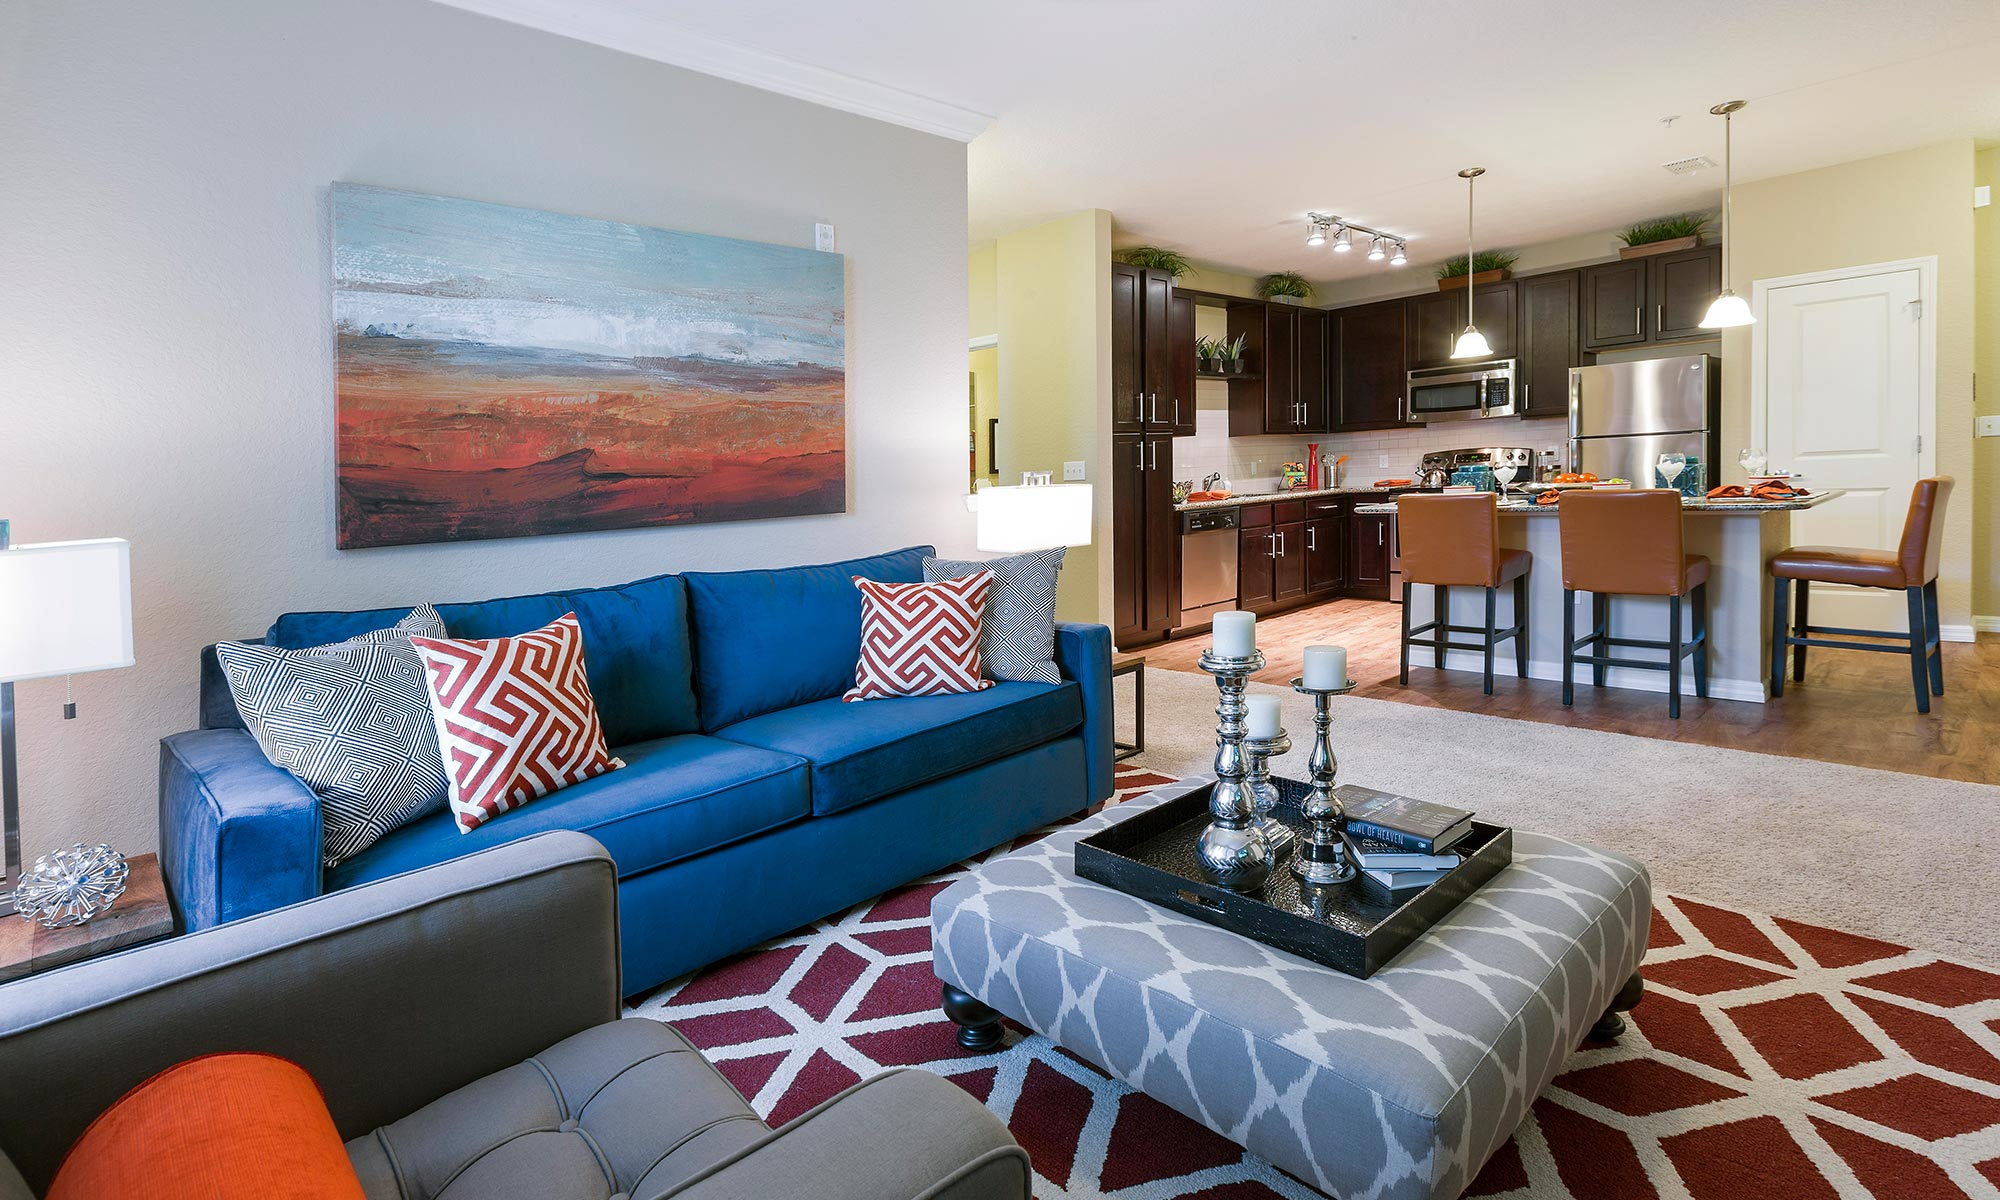 1 Bedroom Apartments In Jacksonville Fl North Jacksonville Fl Apartments In Duval County